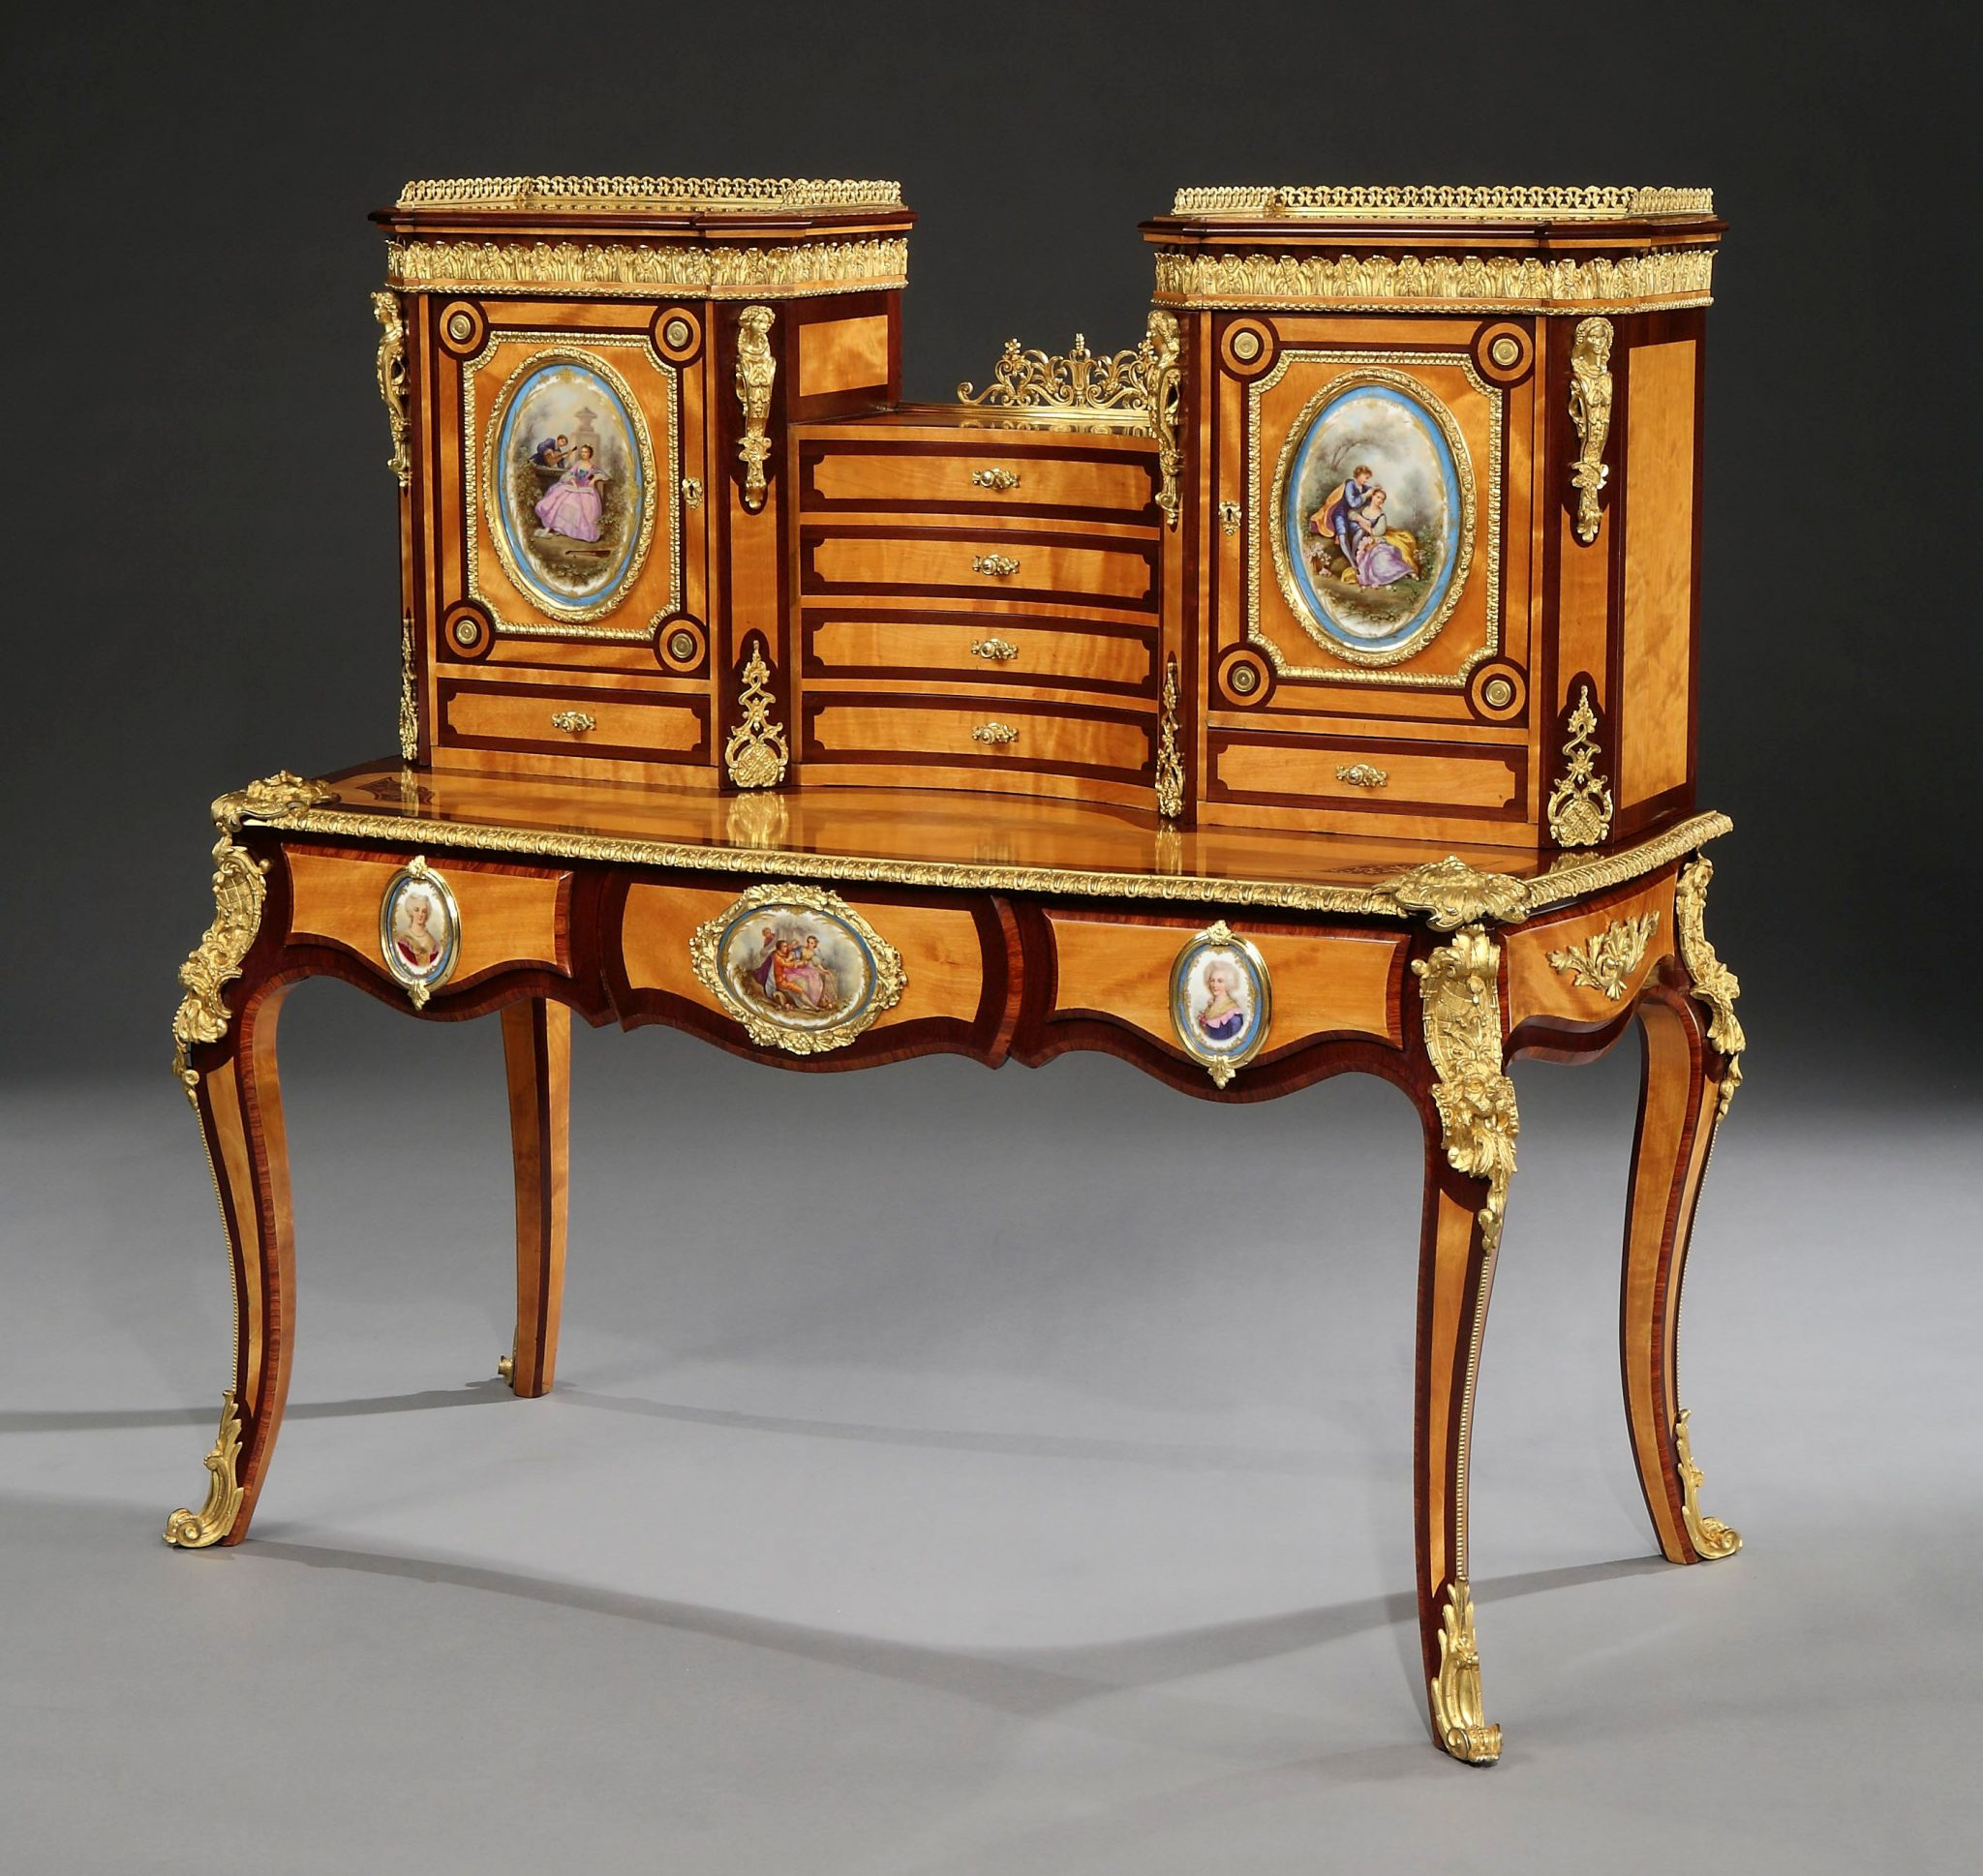 Discover Royal English Furniture Makers: Holland U0026 Sons